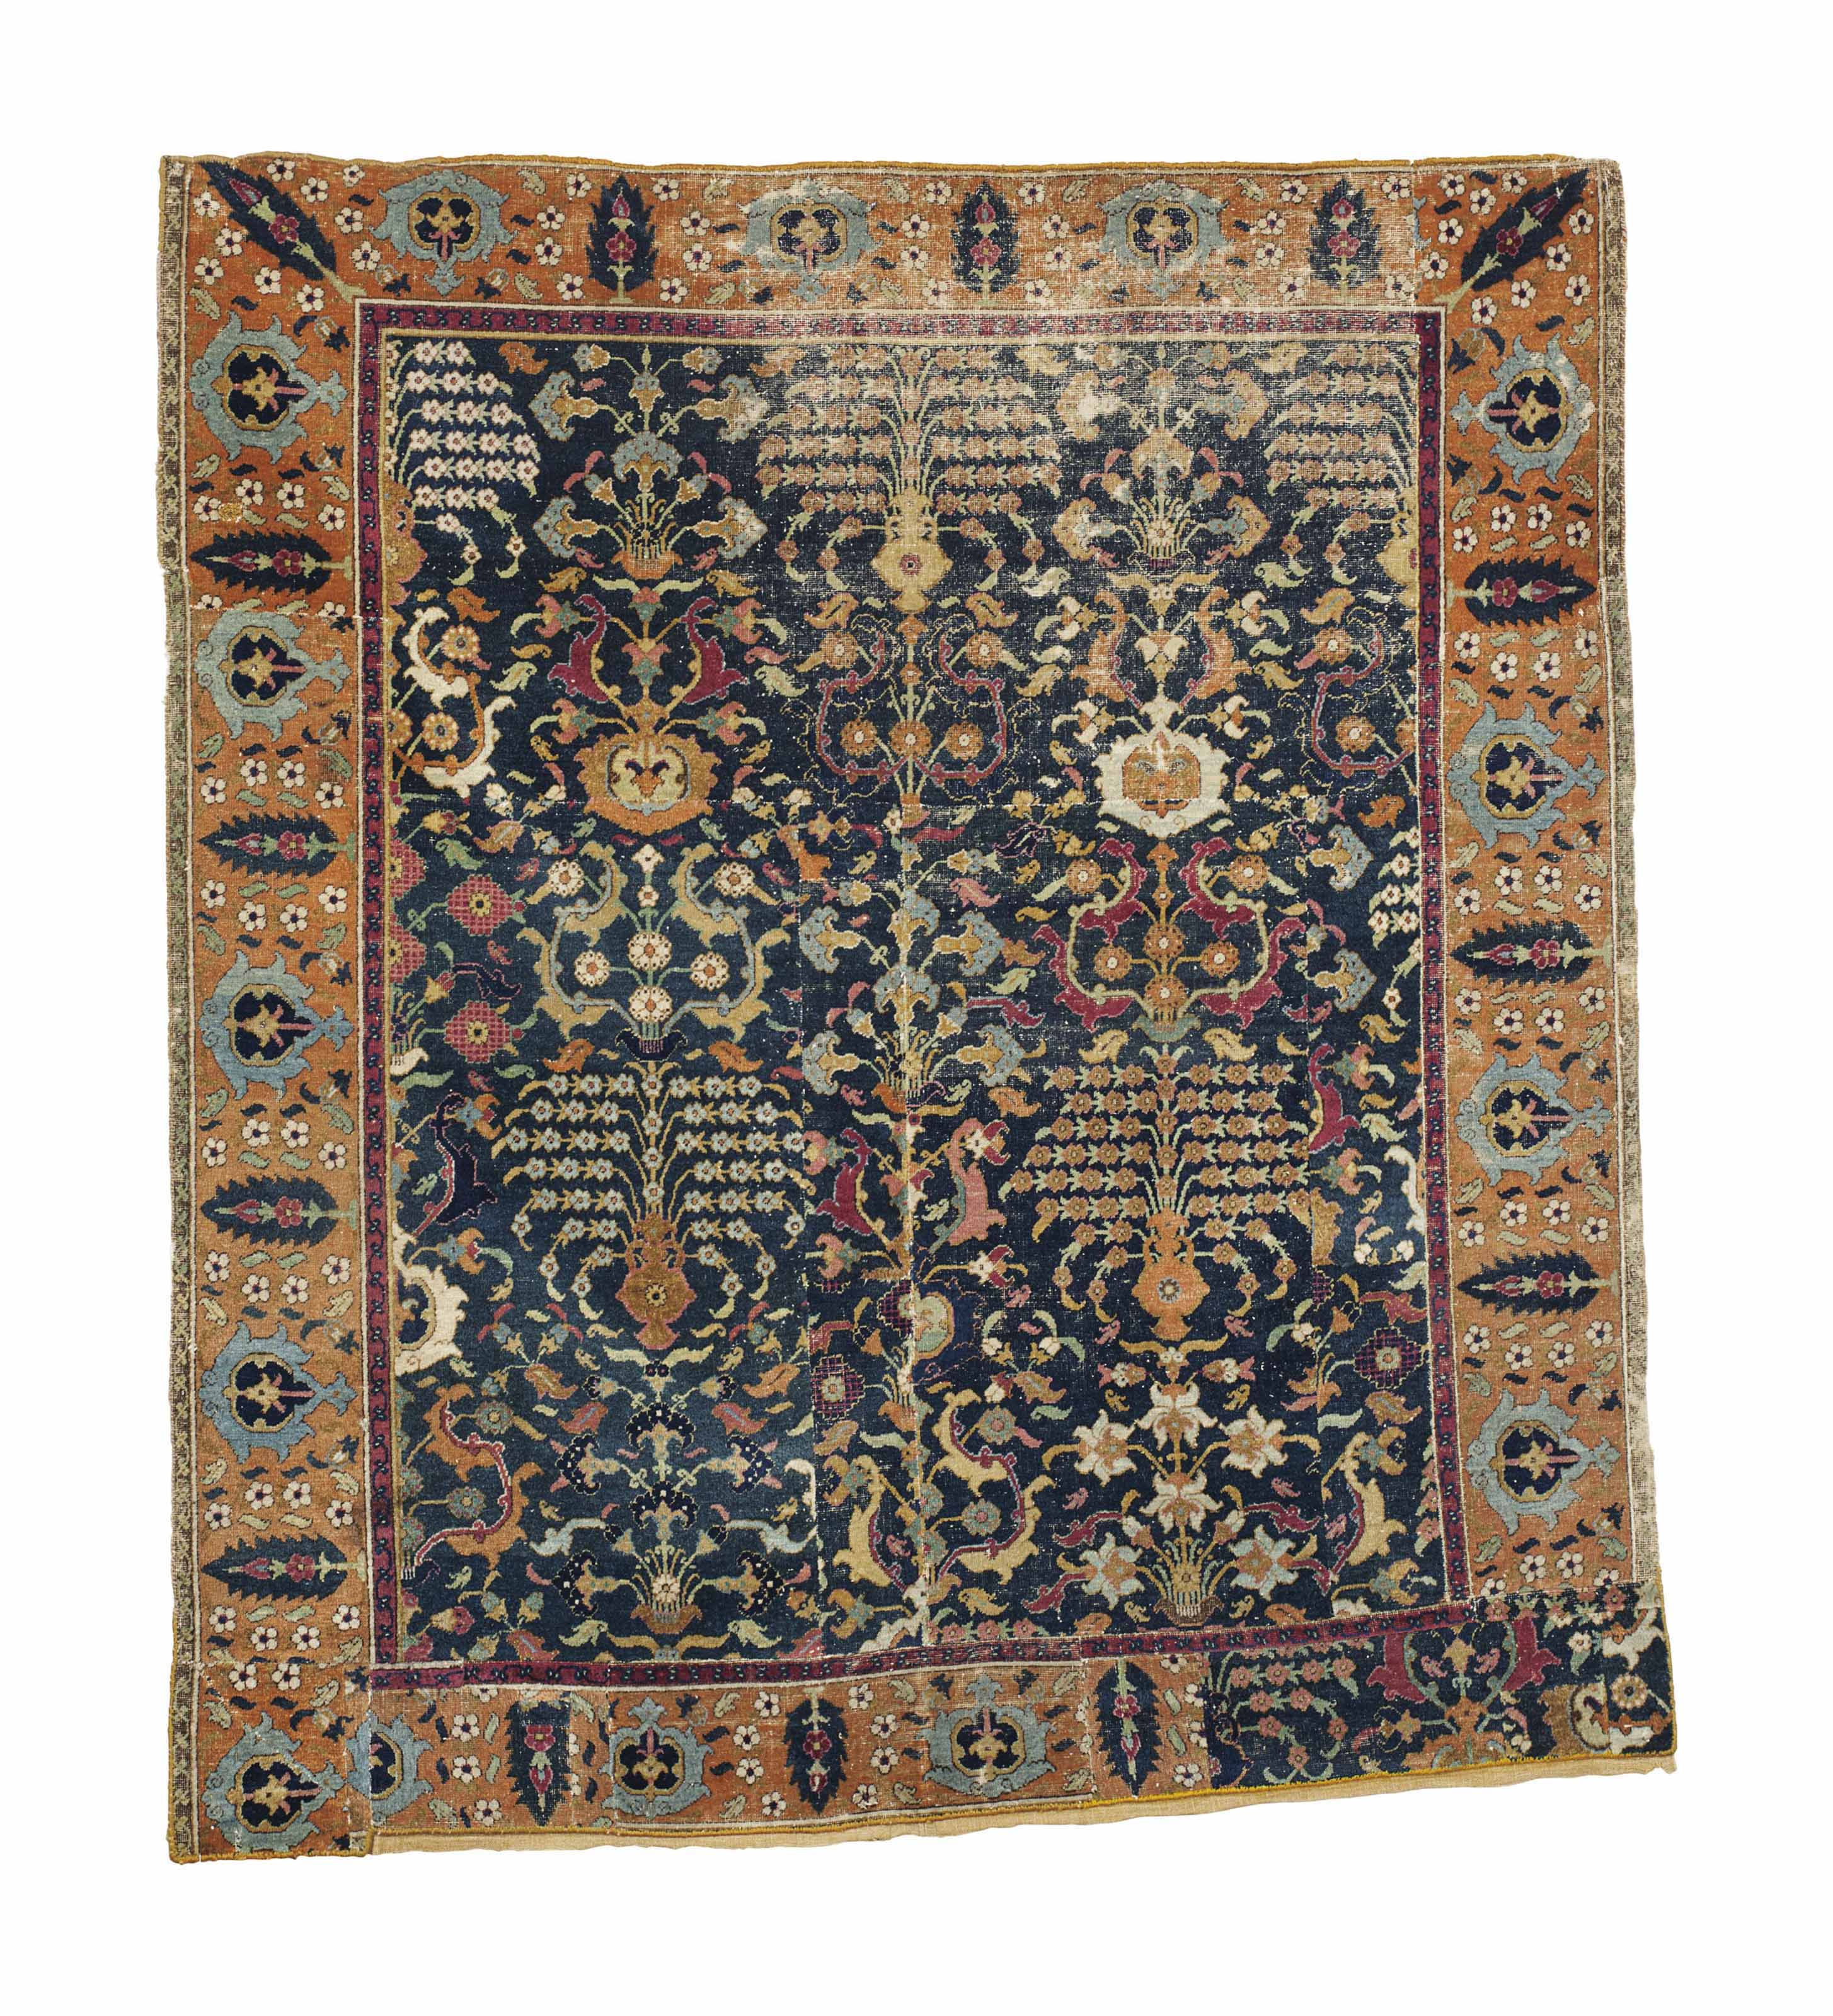 a khorassan shrub carpet east persia second half 17th century christie 39 s